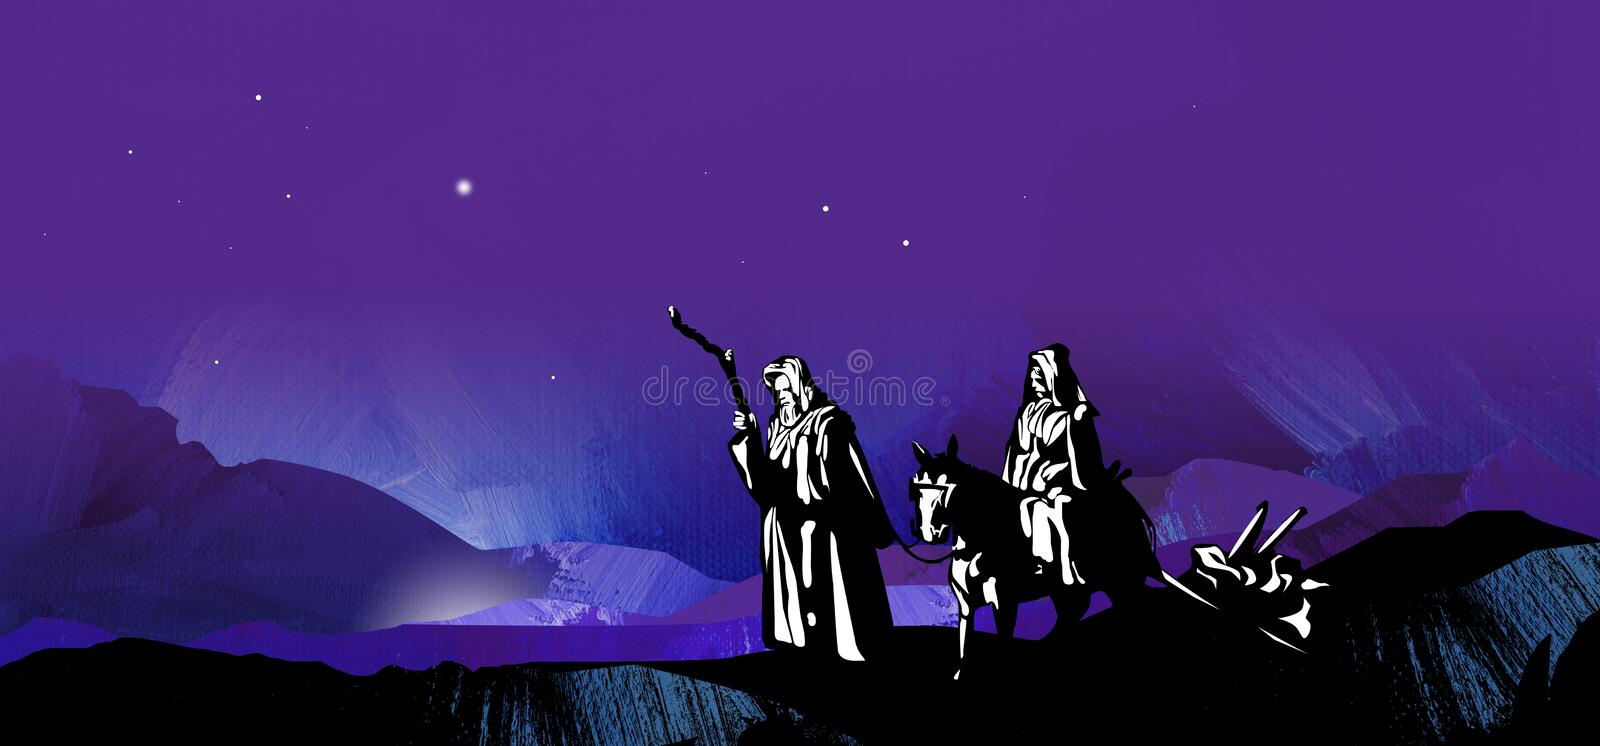 Graphic starry Christmas night journey to Bethlehem with mountains. Graphic illustration of dark starry Christmas night composed of textured oil paint background vector illustration